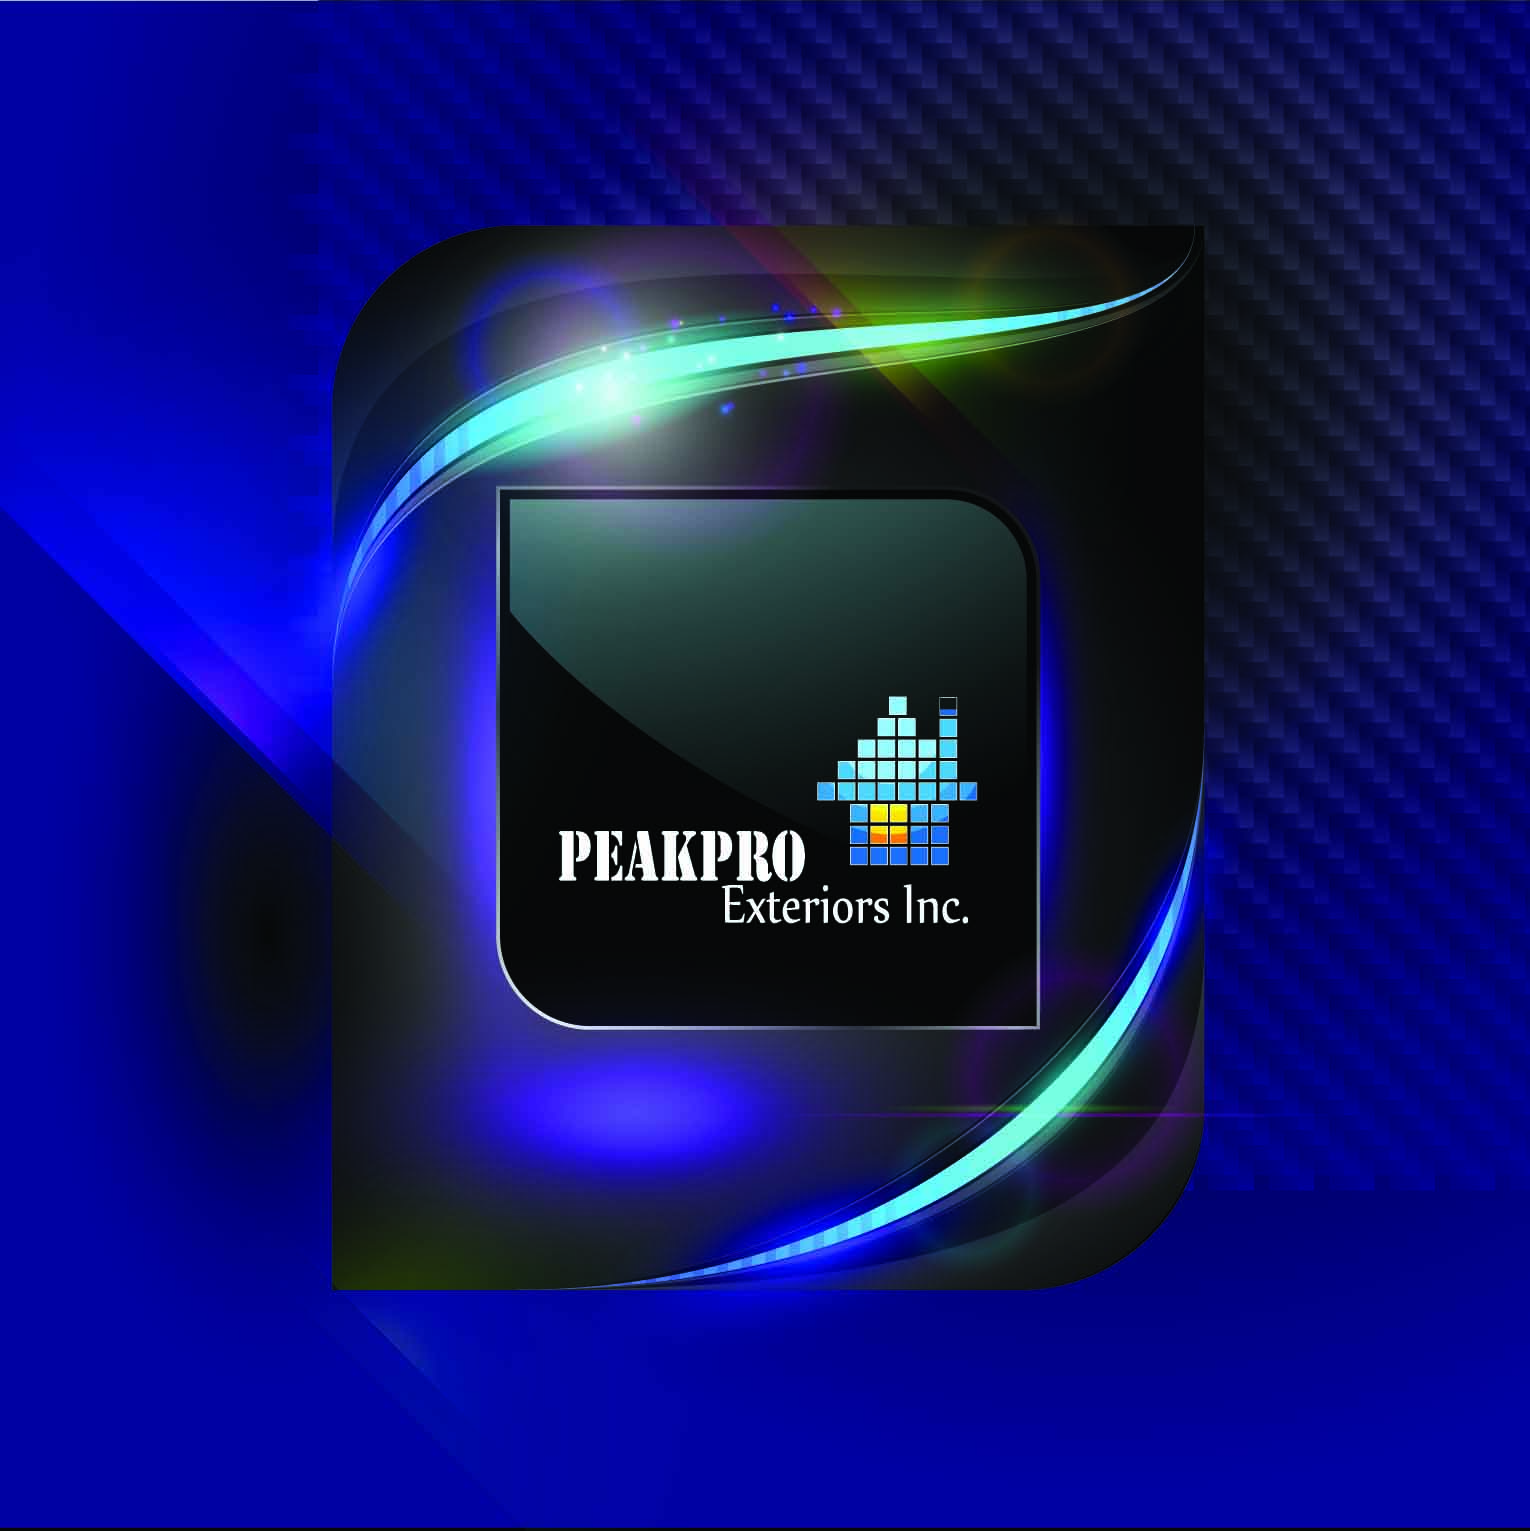 Logo Design by mediaproductionart - Entry No. 58 in the Logo Design Contest Captivating Logo Design for Peakpro Exteriors Inc..